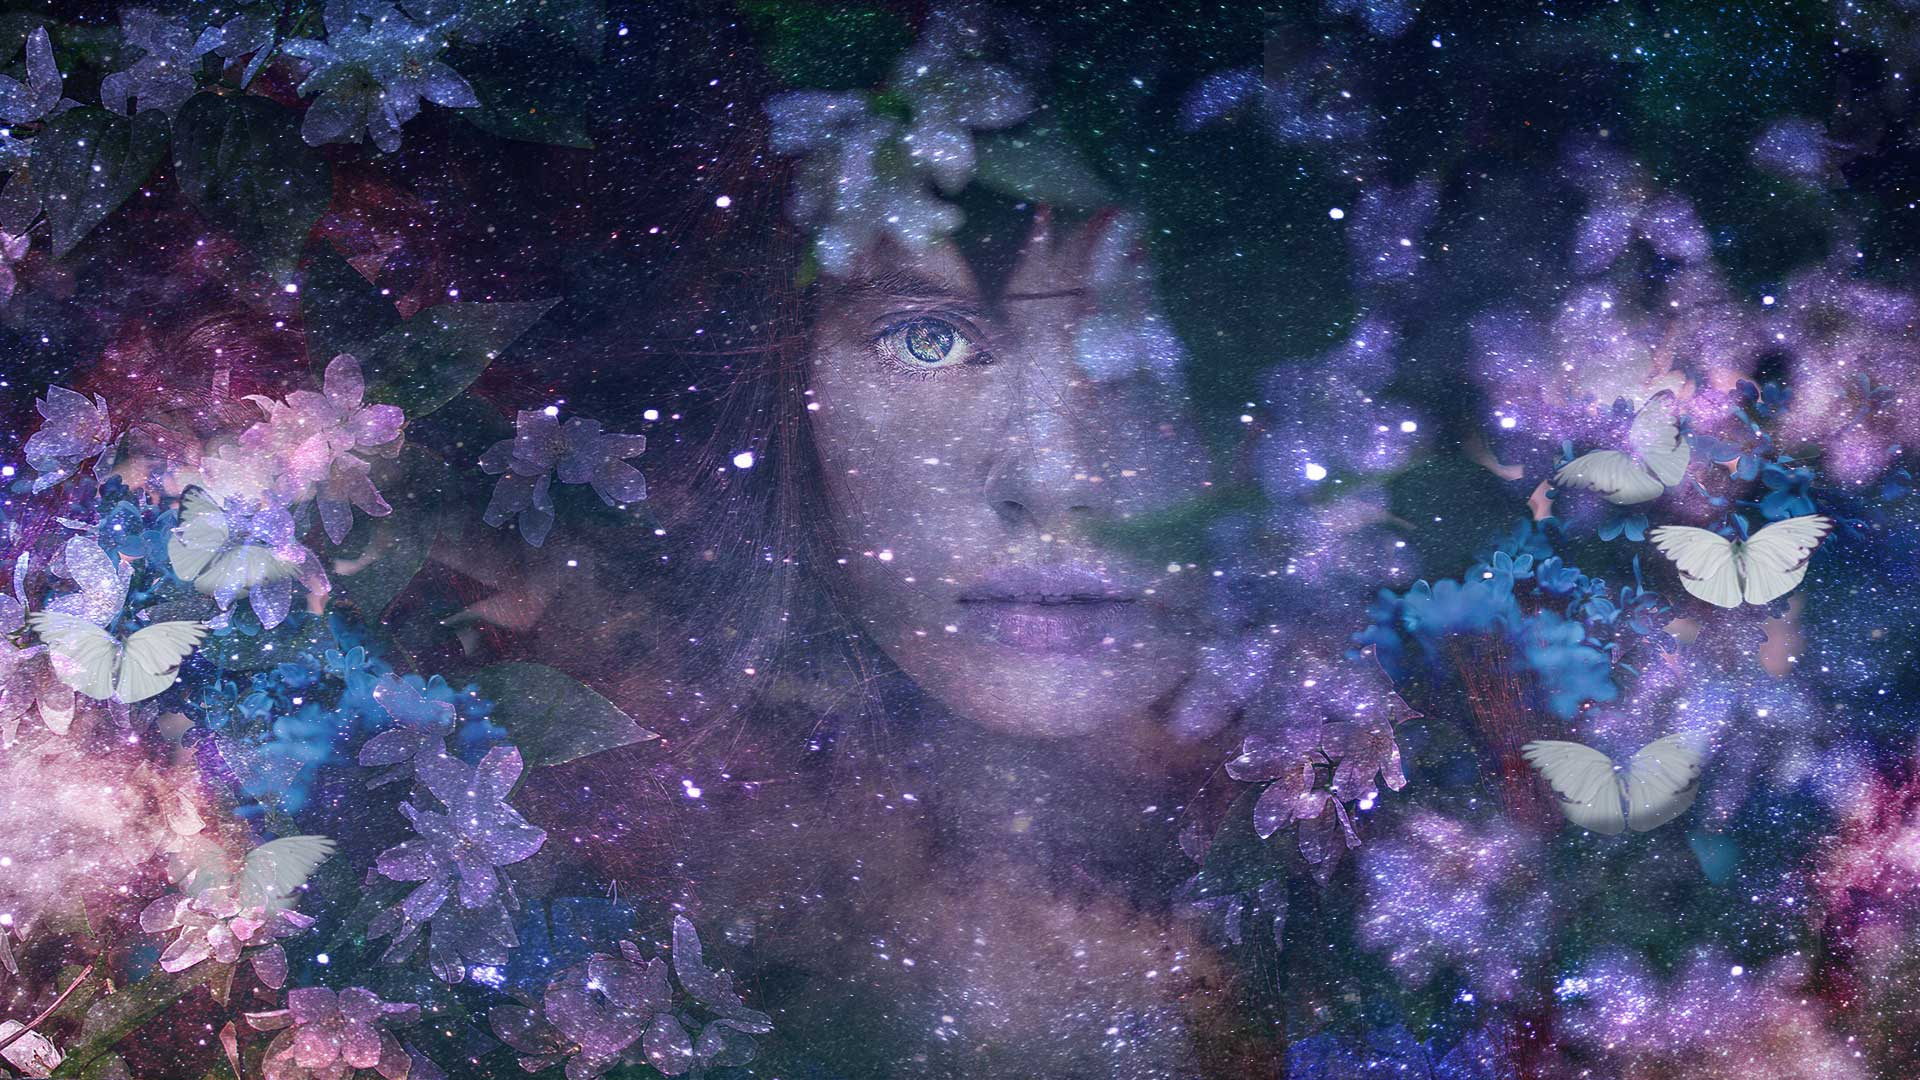 The face of a woman in the centre with flowers around her, butterflies, stars and the expane of space in the background